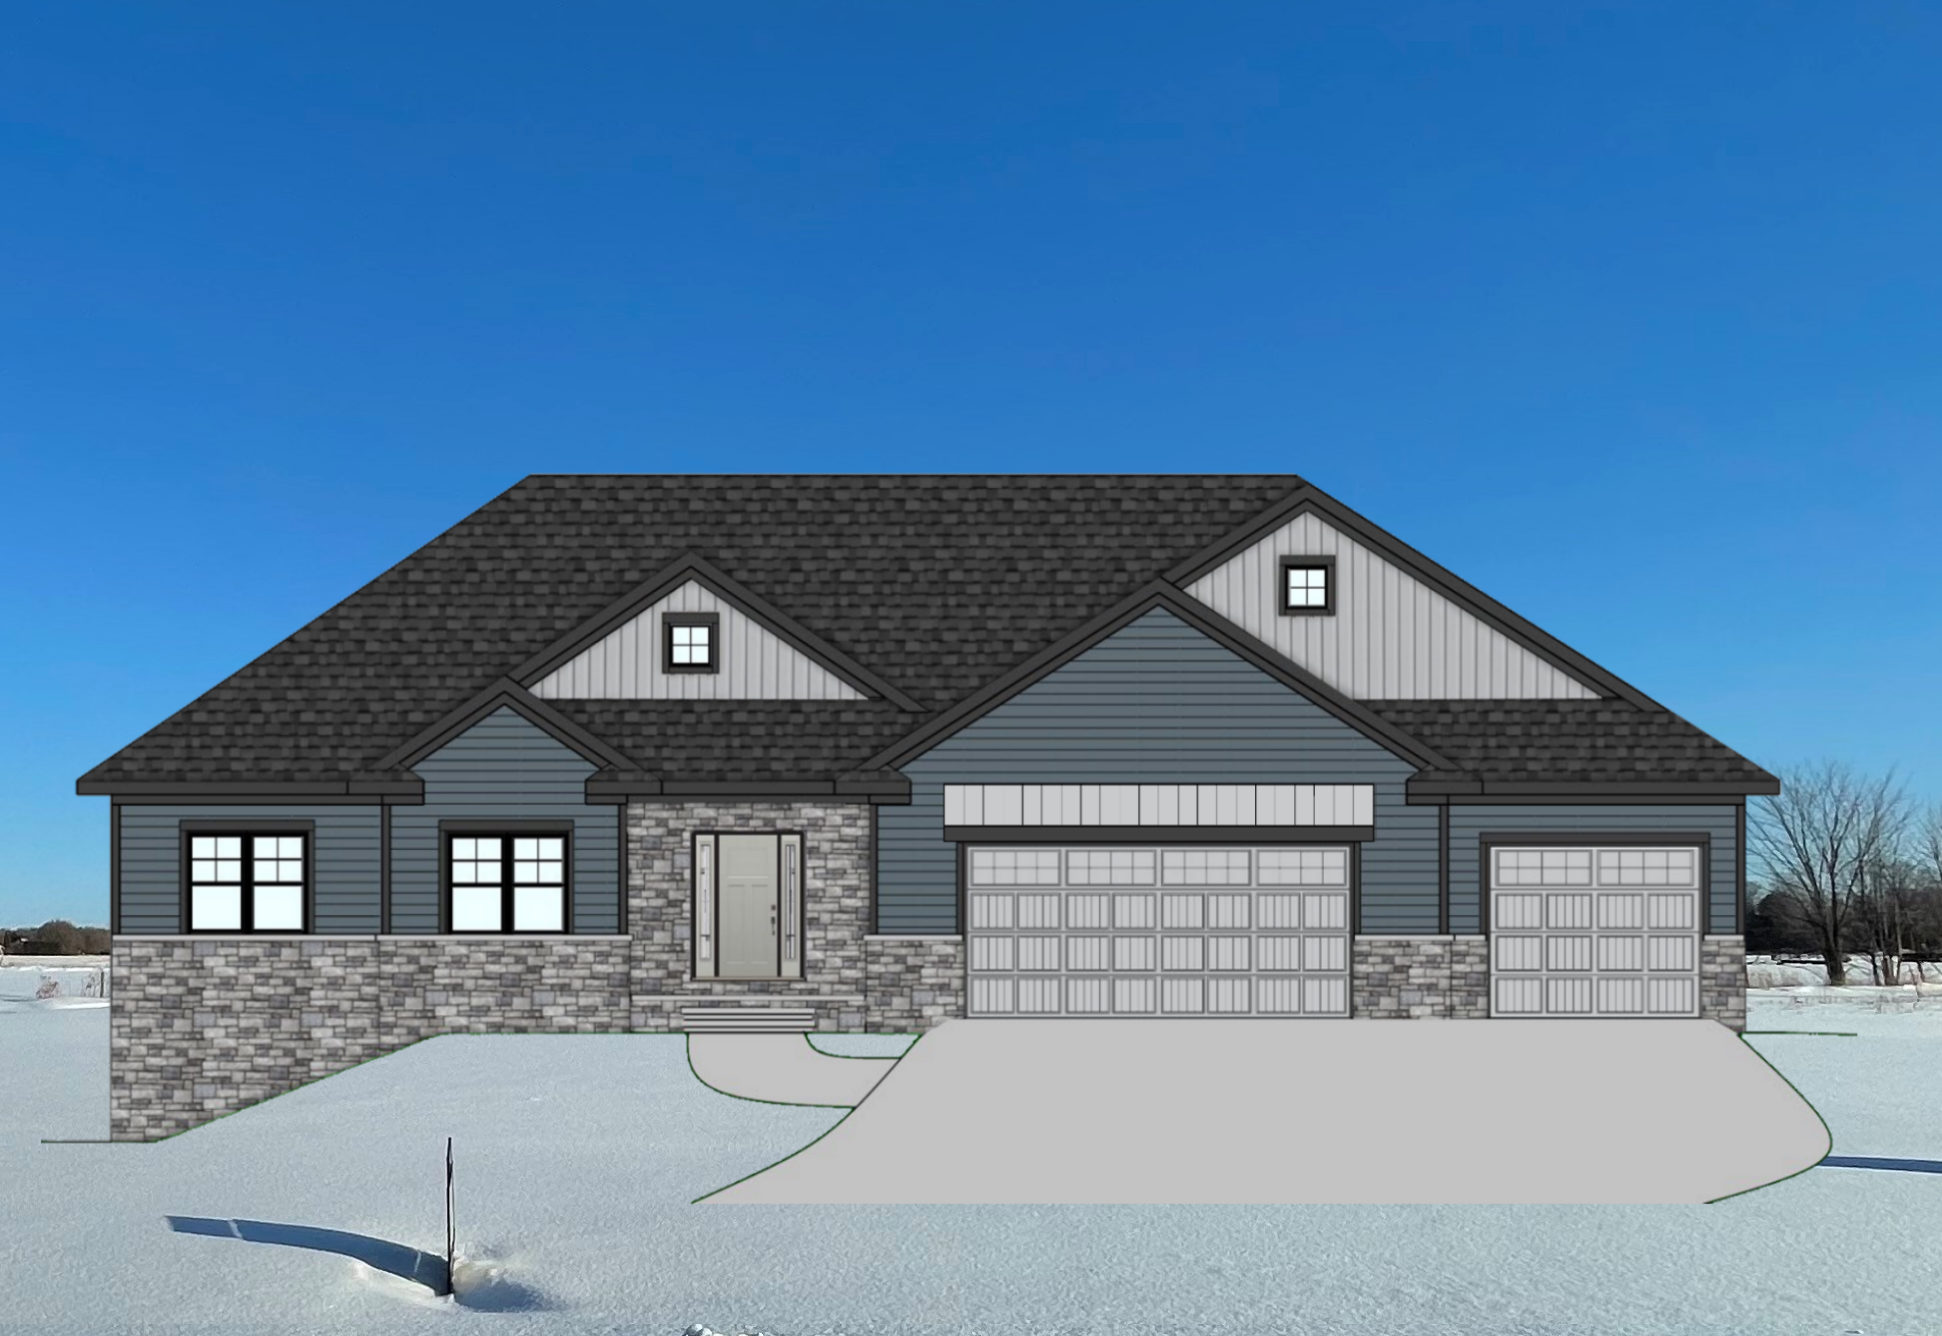 custom house plans, custom made houses, Atkins Family Builders, northeast wi area builders, best home builders,, builders near you